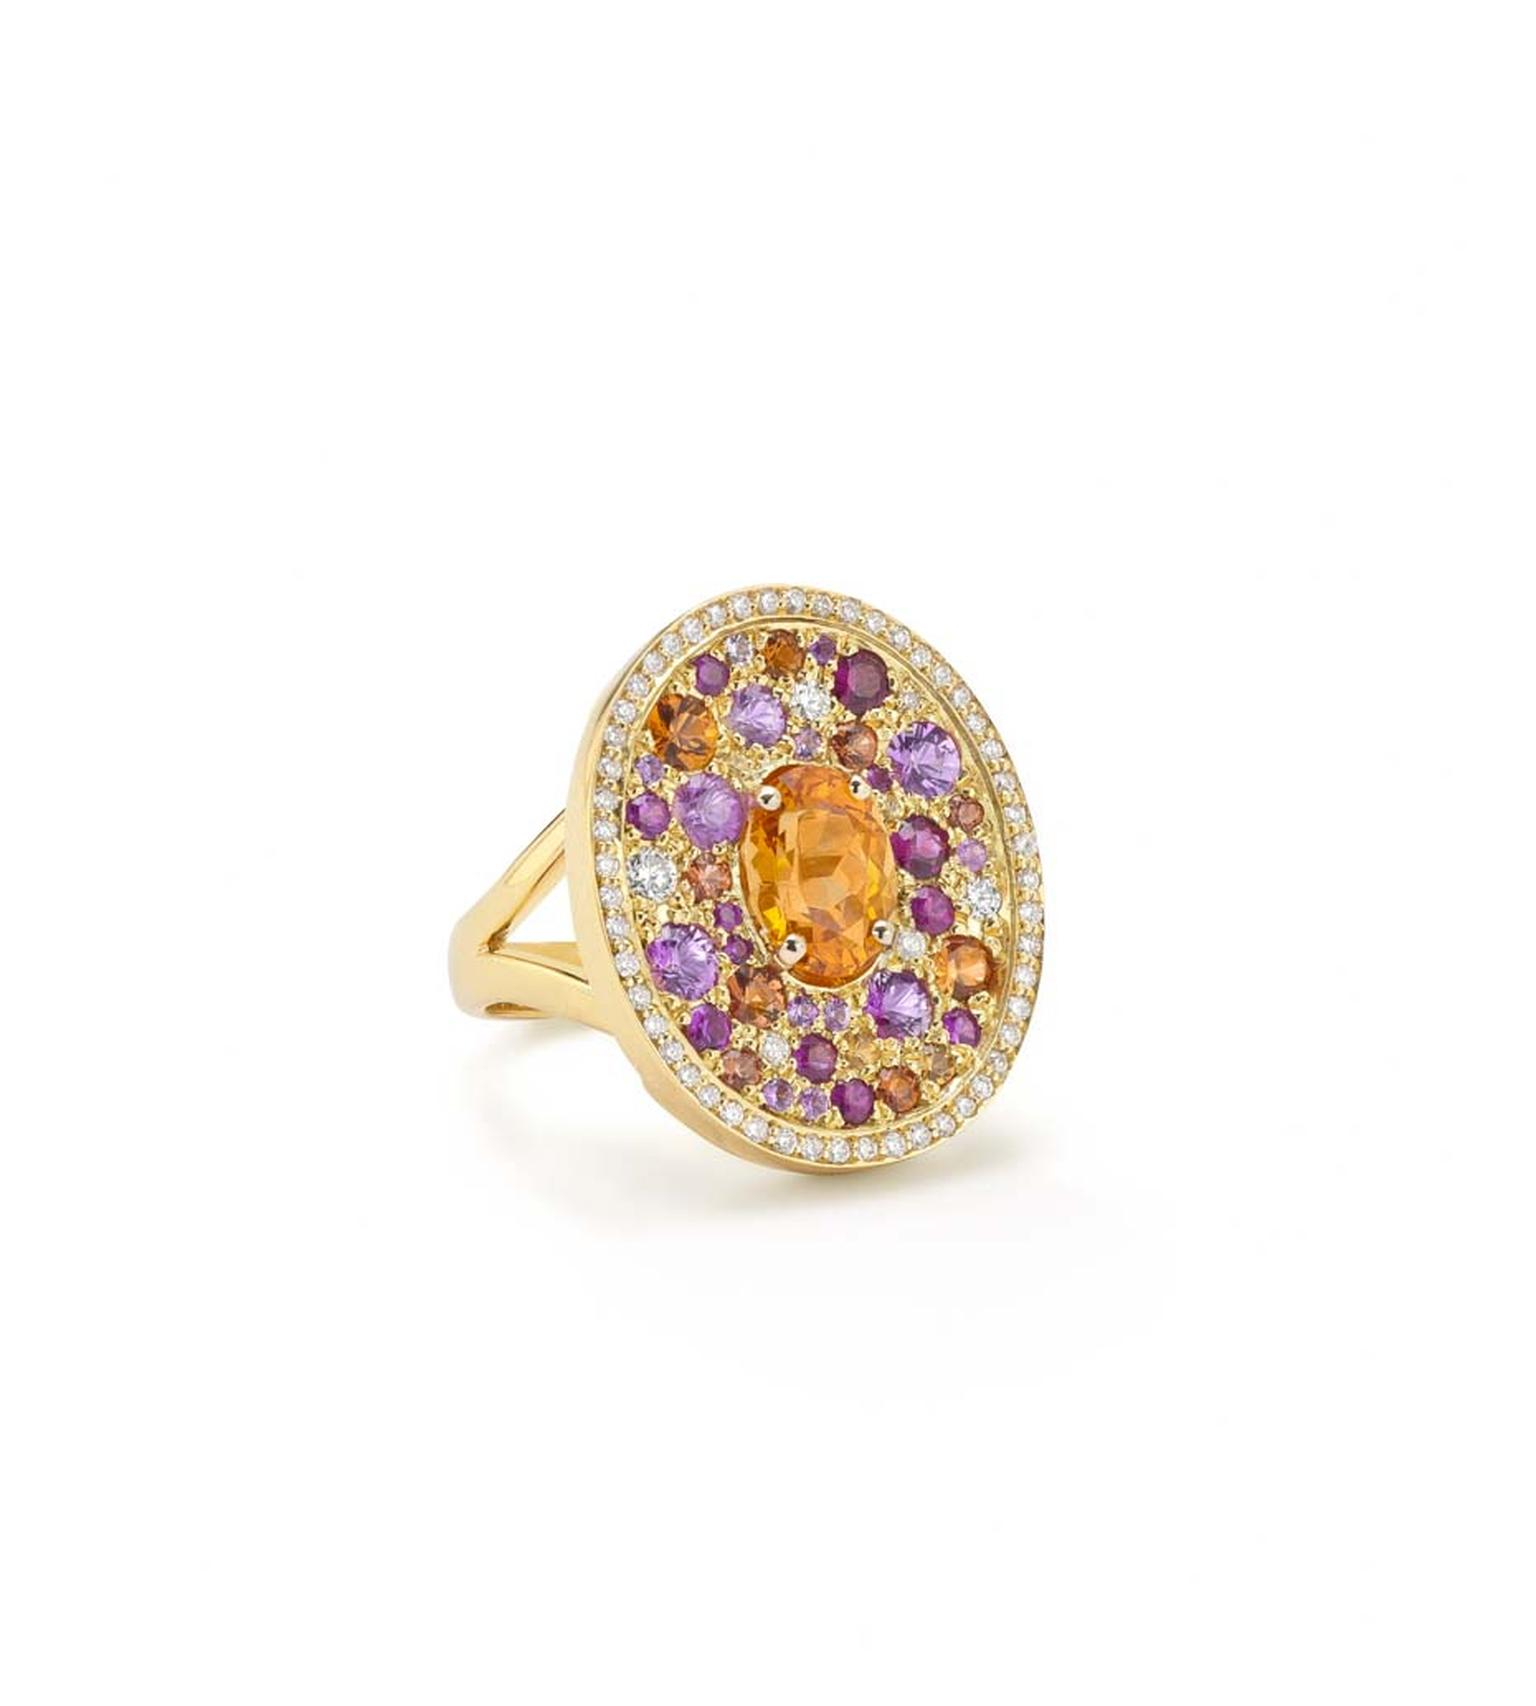 Robinson Pelham white gold Volcano Asteroid ring featuring a central oval mandarin garnet surrounded by a pave of diamonds, rubies and yellow, orange and pink sapphires.